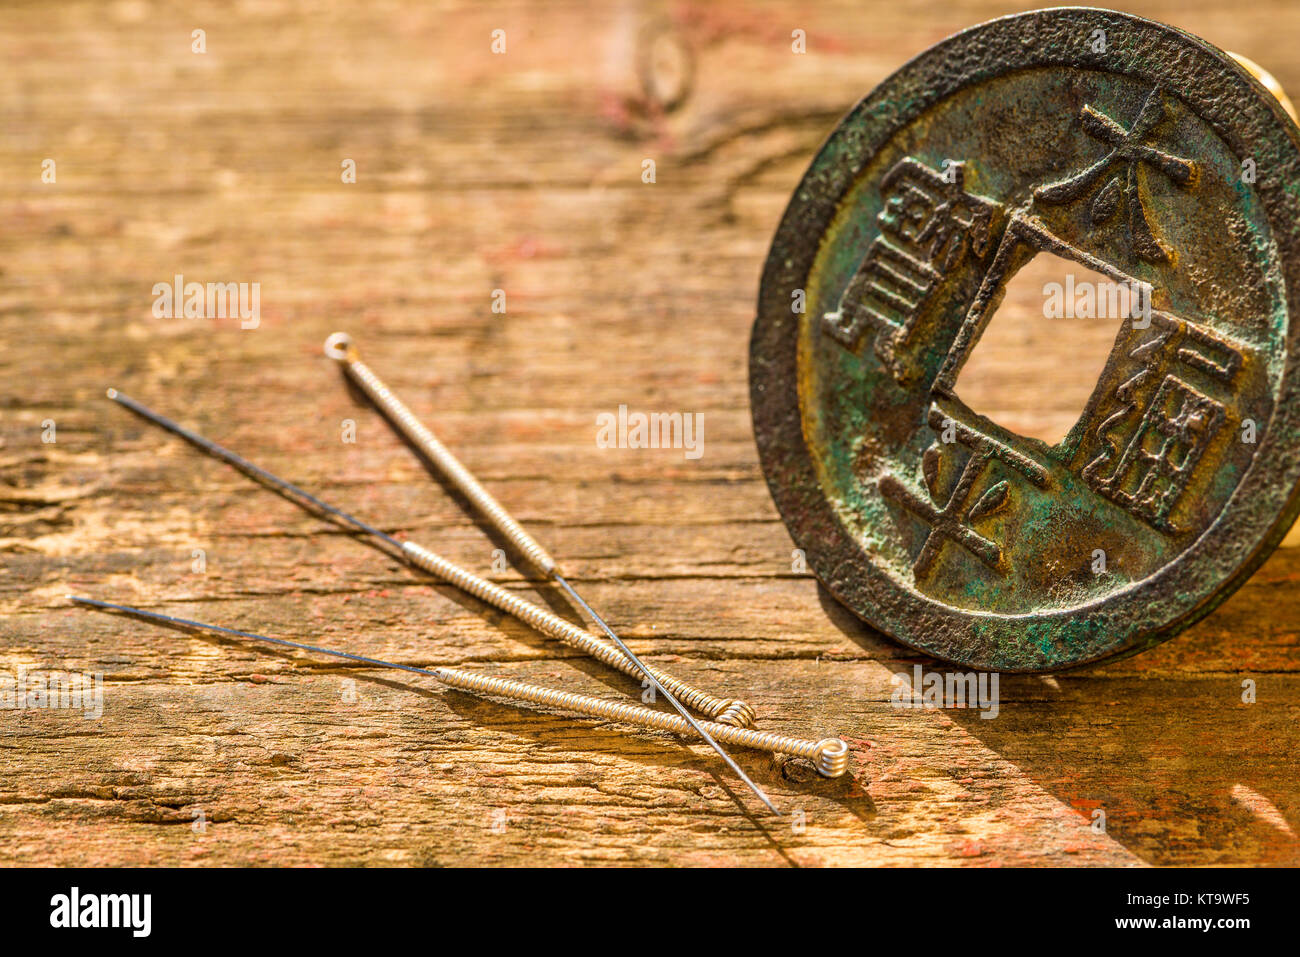 Acupuncture Needles Chinese Ancient Coin Stock Photo Alamy